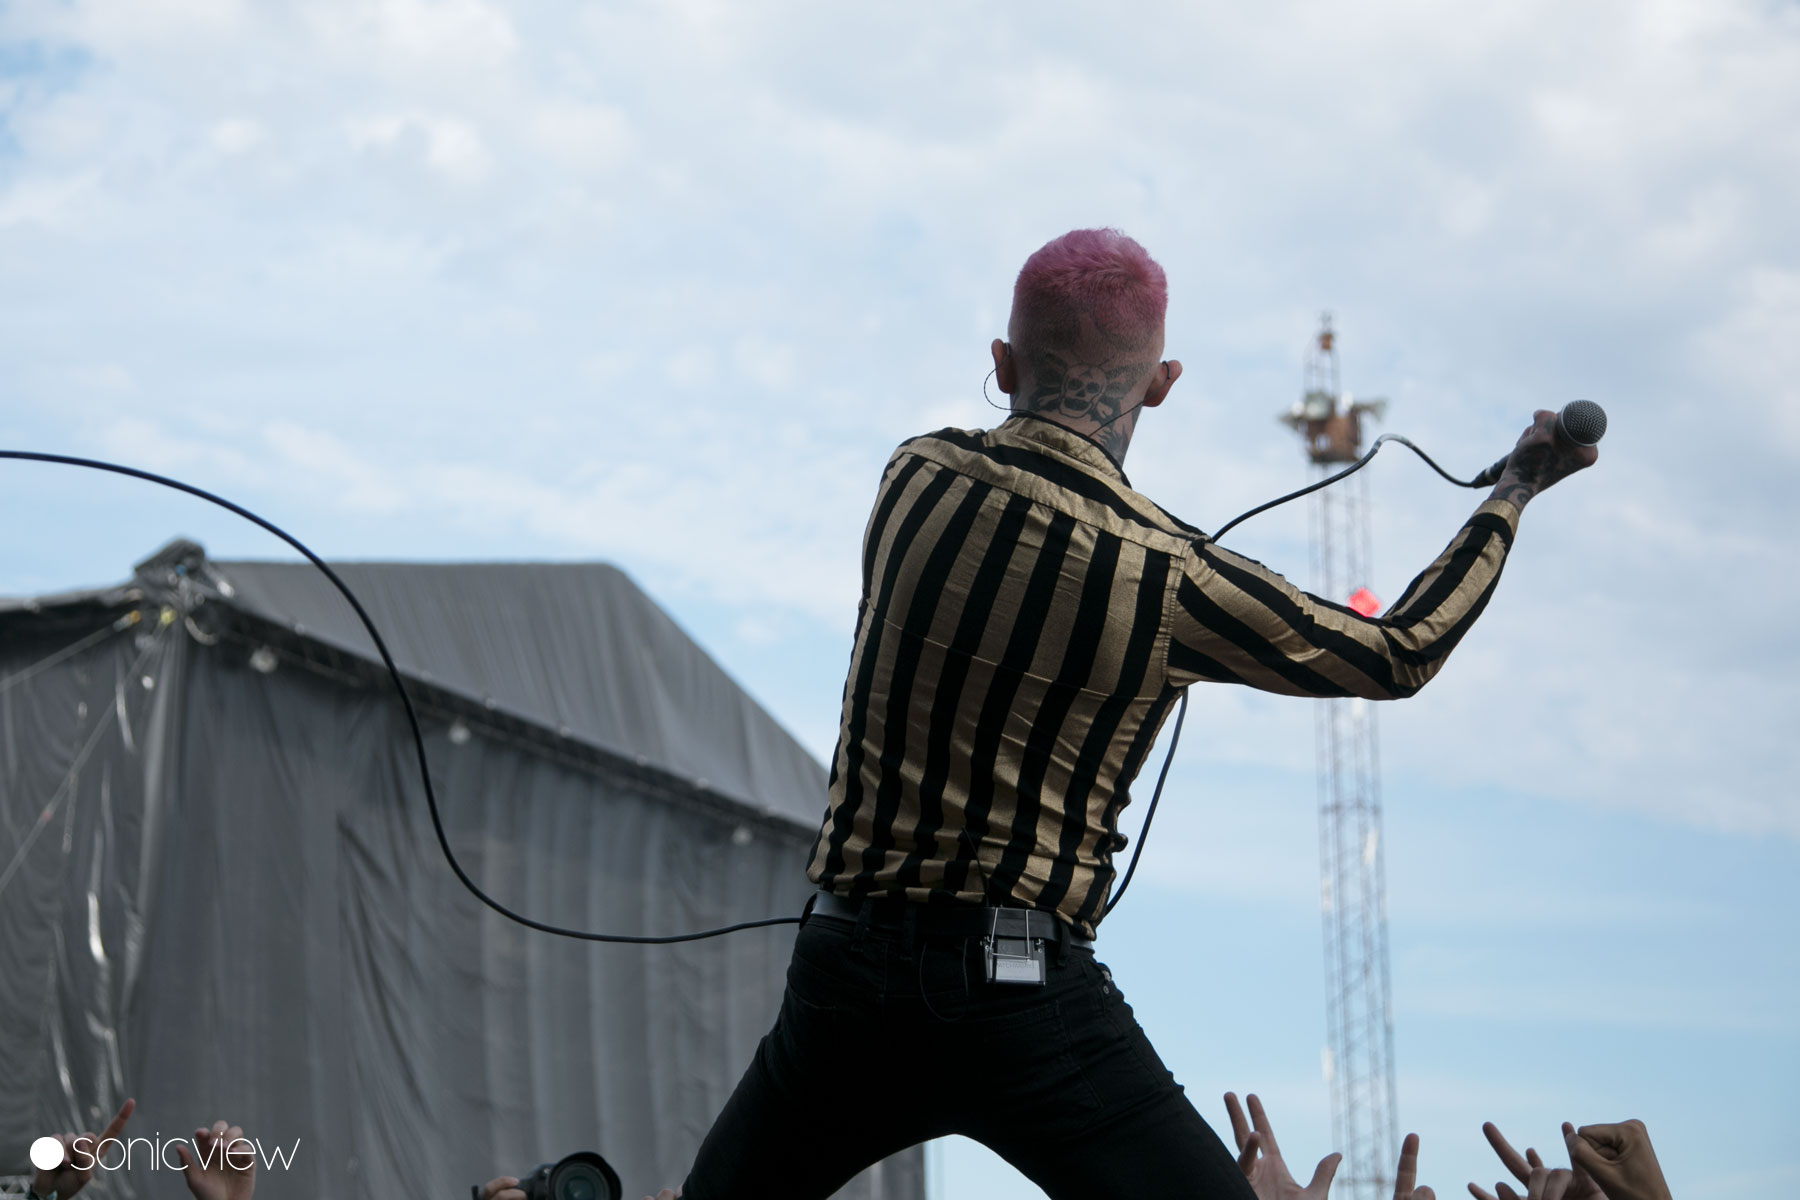 Frank Carter & The Rattlesnakes: Live at Copenhell 2017, Denmark